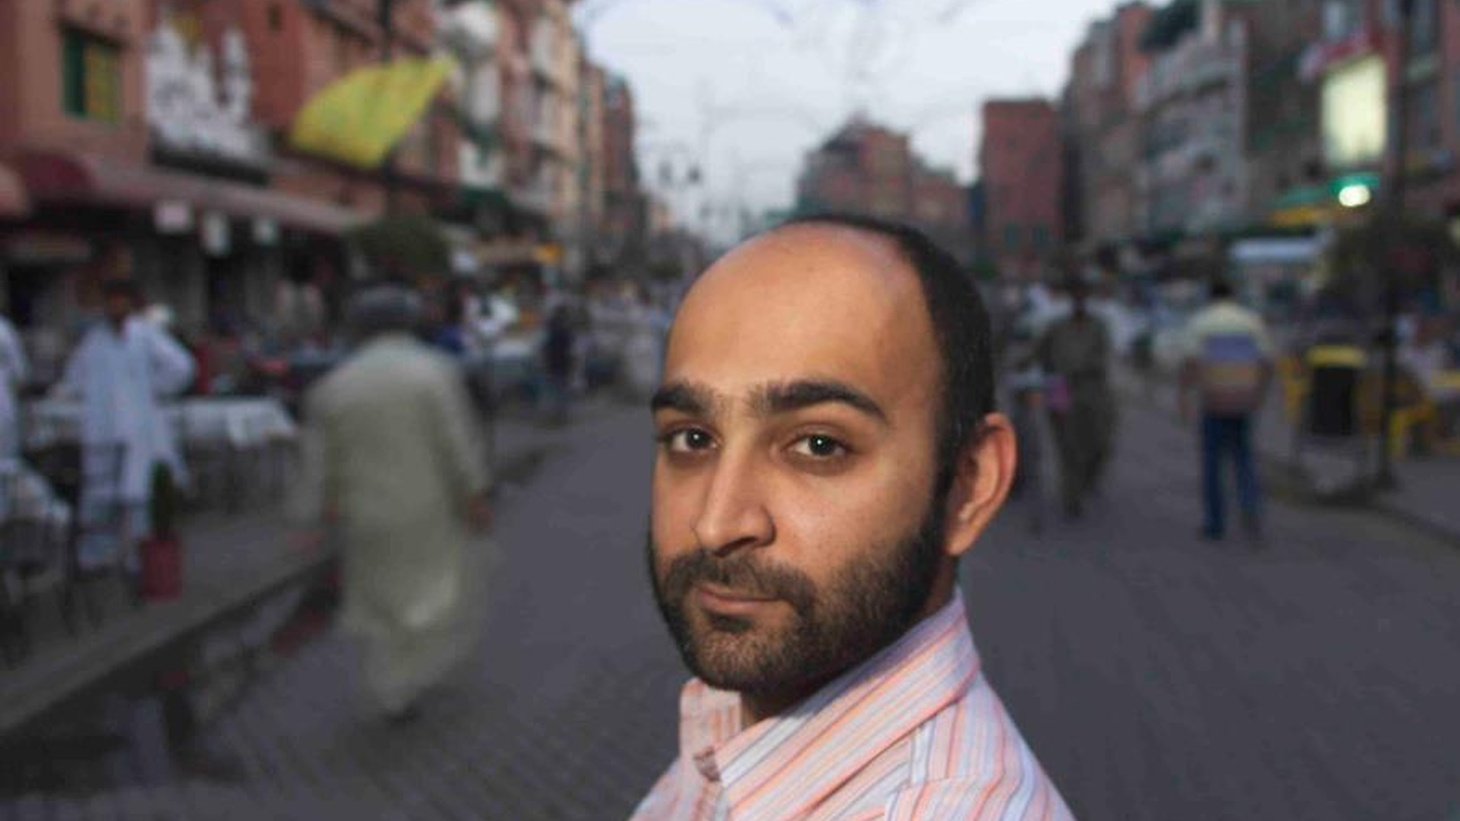 Mohsin Hamid mocks the self-help genre in his new novel.